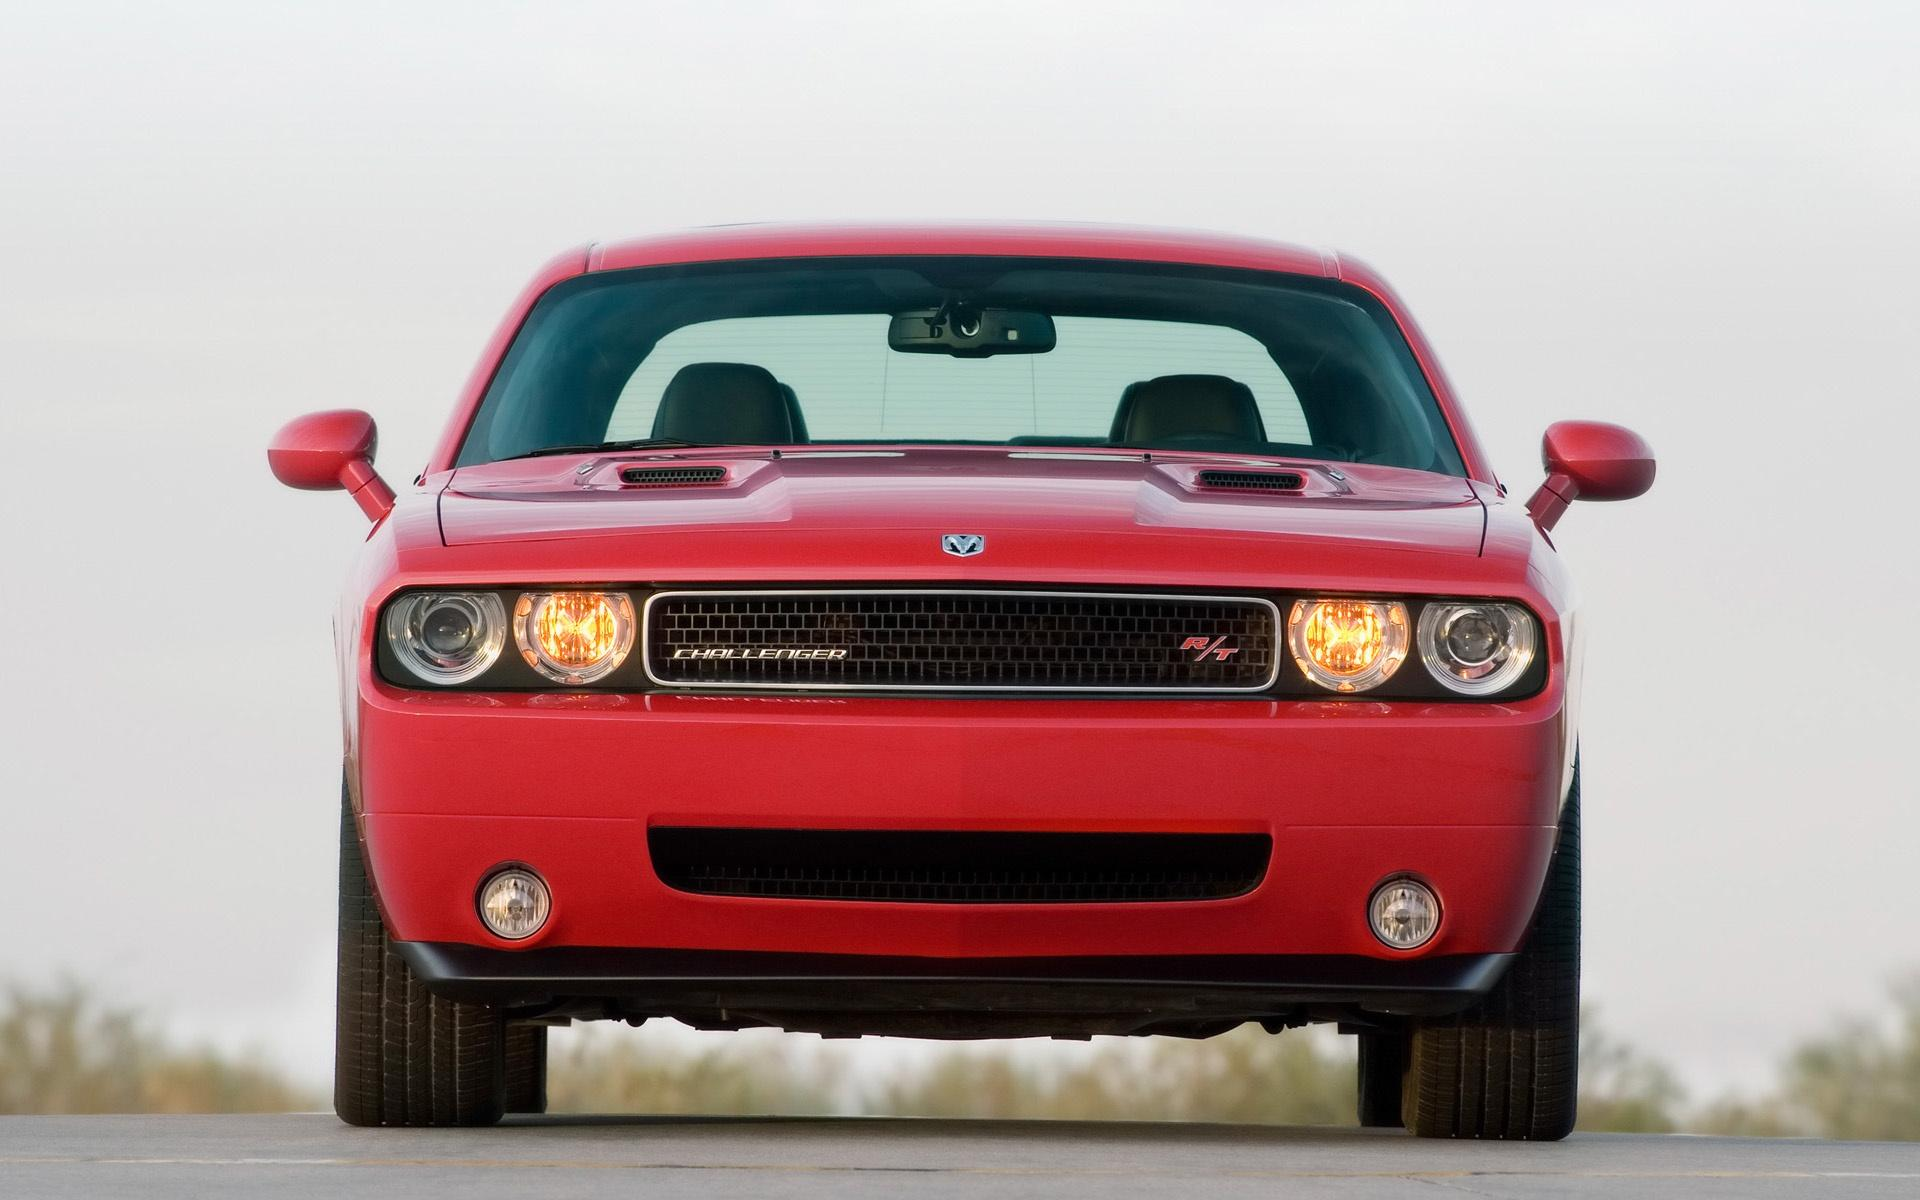 2009 Dodge Challenger Rt Front 1920x1200